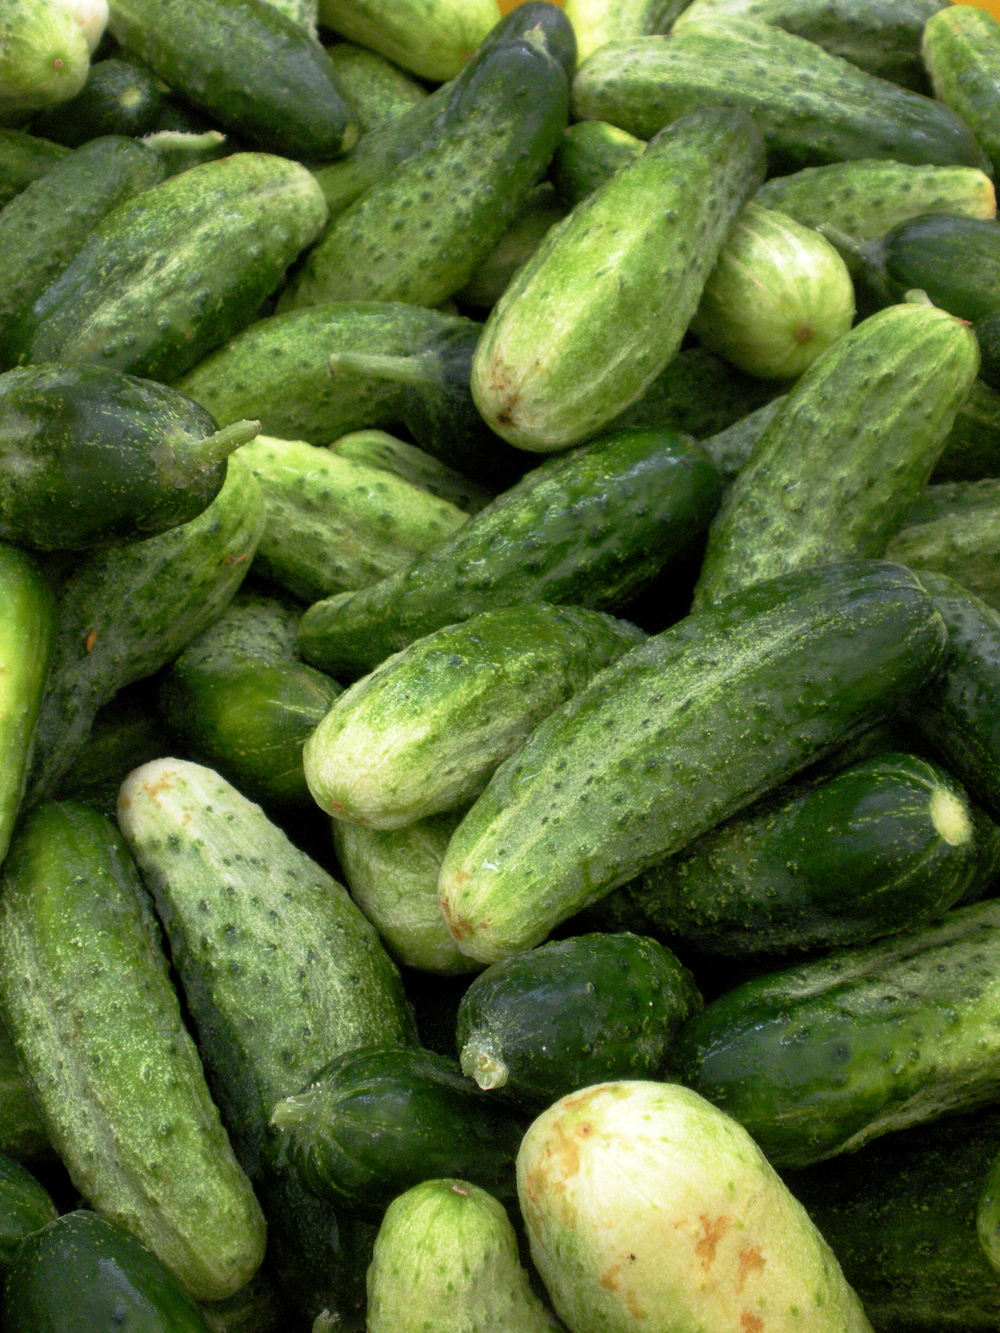 Cucumber season is officially in full swing!